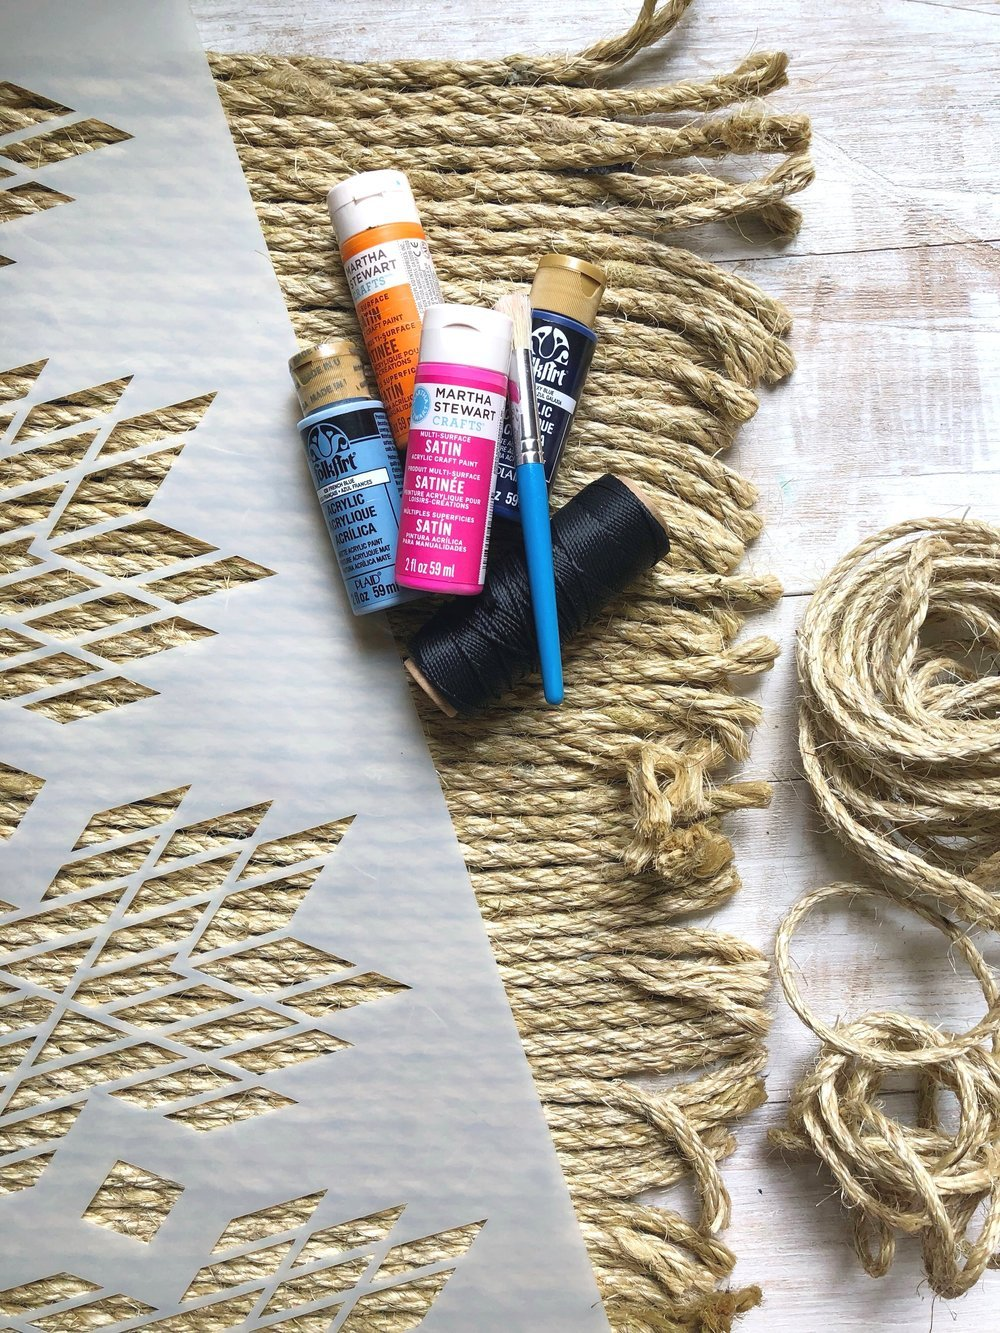 How to Make Your Own Large Boho Jute Rope Rug + How to Stencil on a Rug #homedecor #juterope #rugdiy #stencil #boho #easydiy #bohostyle